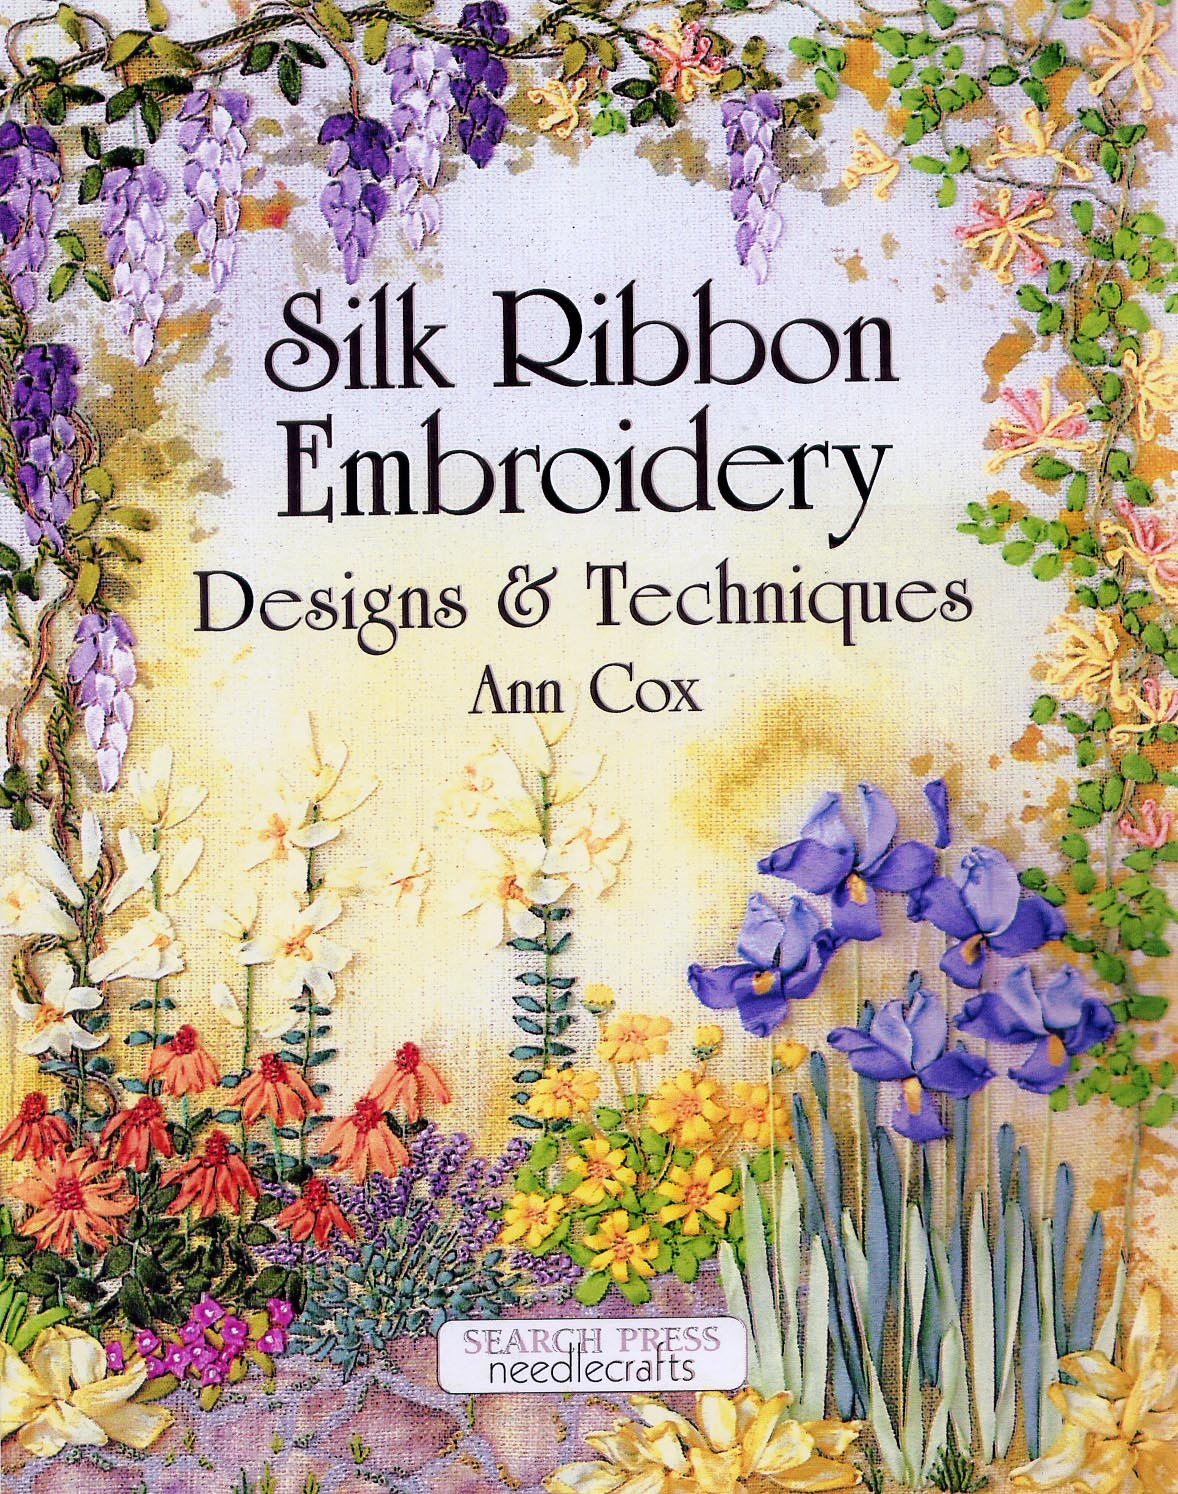 My embroidery silk ribbon designs and techniques